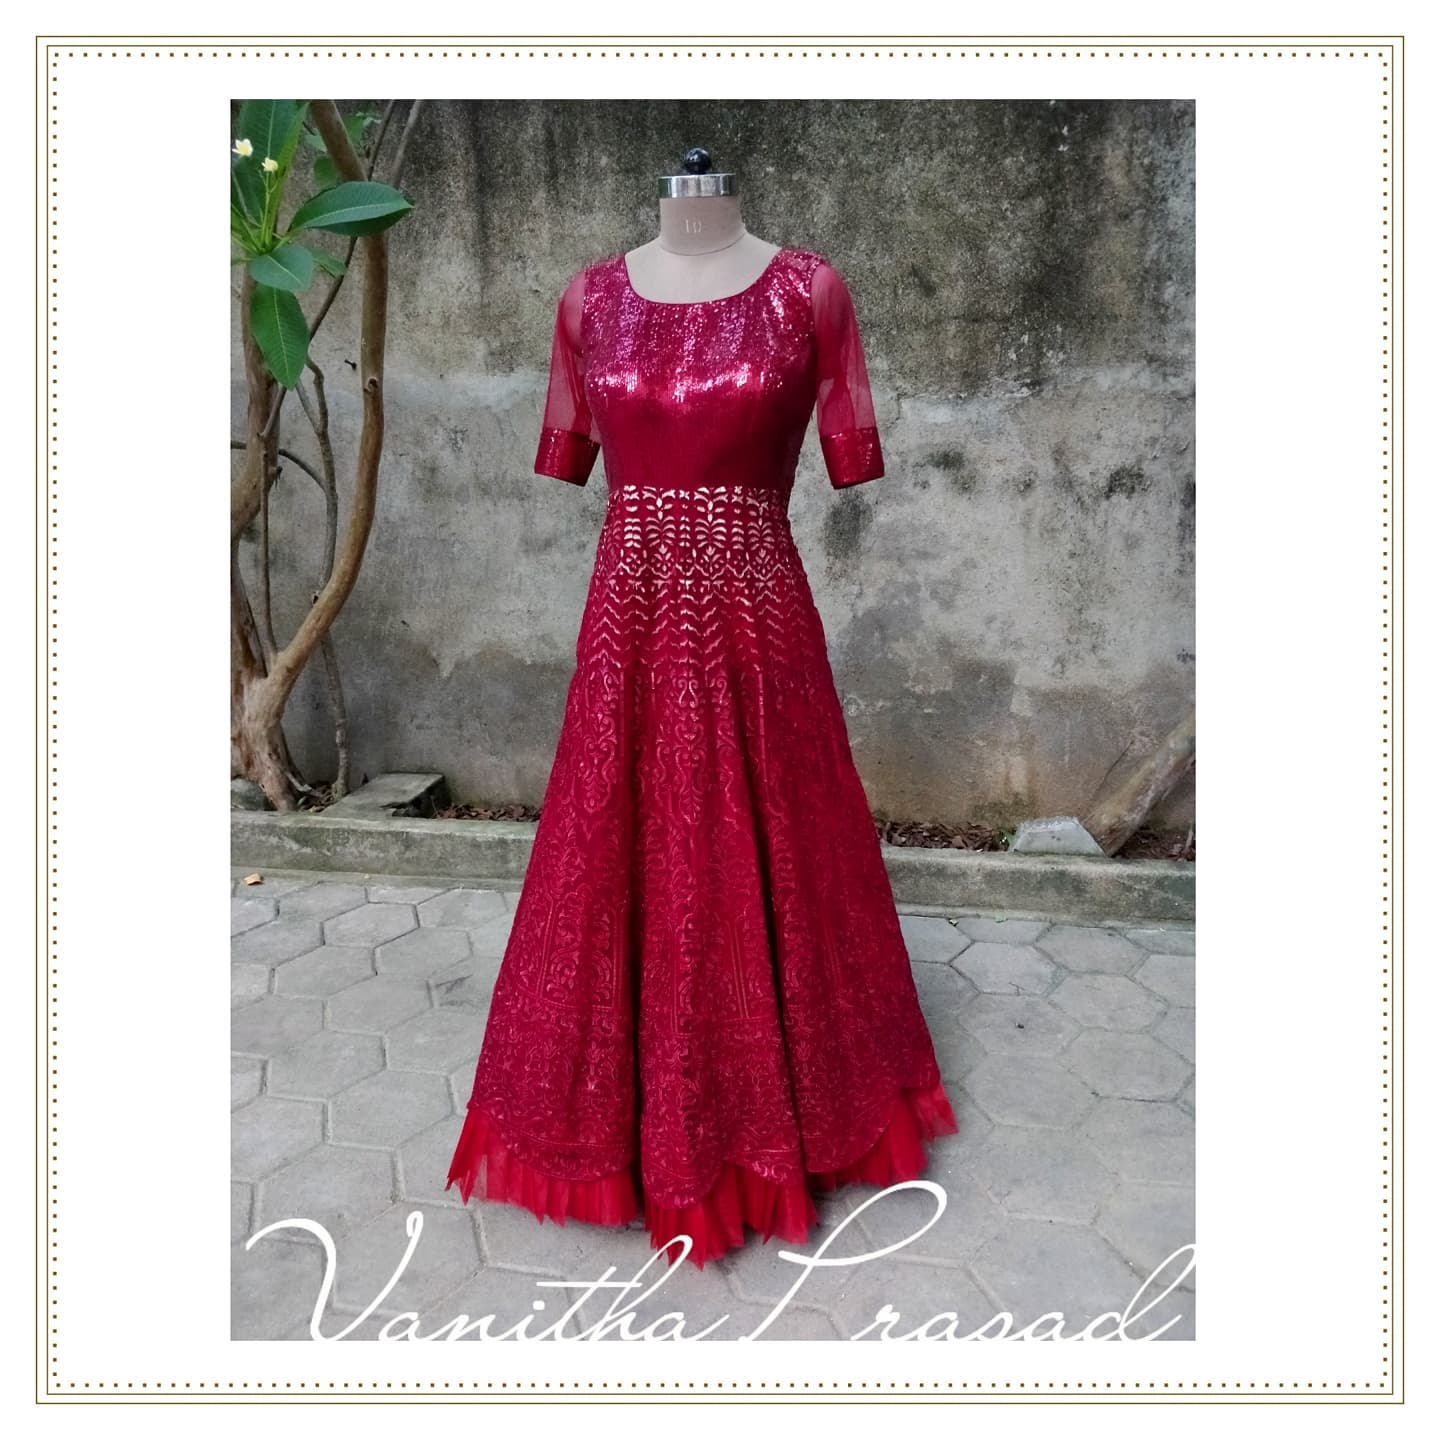 Stunning red color glittery floor length long frock. 2021-09-26